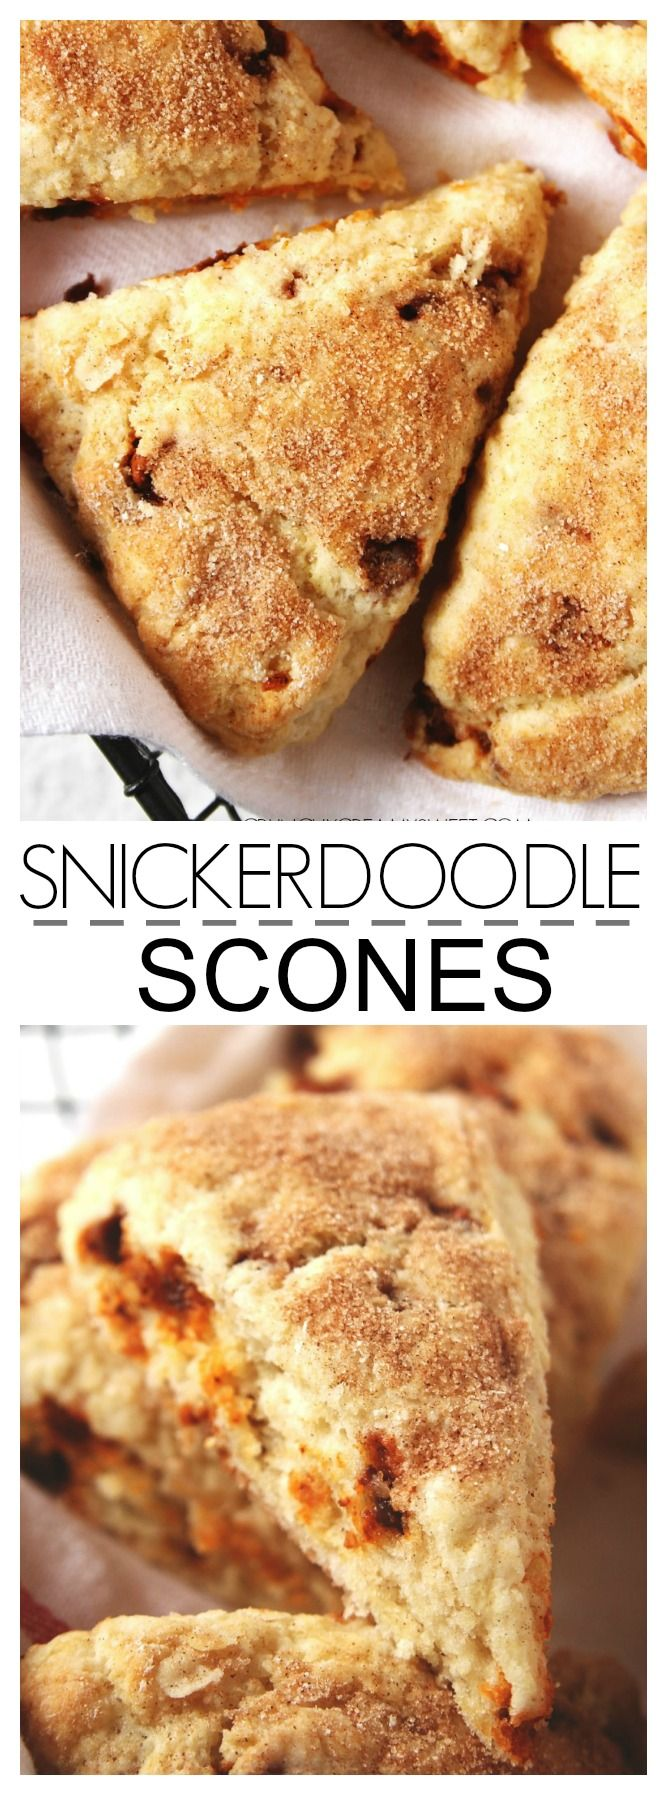 Snickerdoodle Scones - tender scones with cinnamon chips and cinnamon sugar topping!